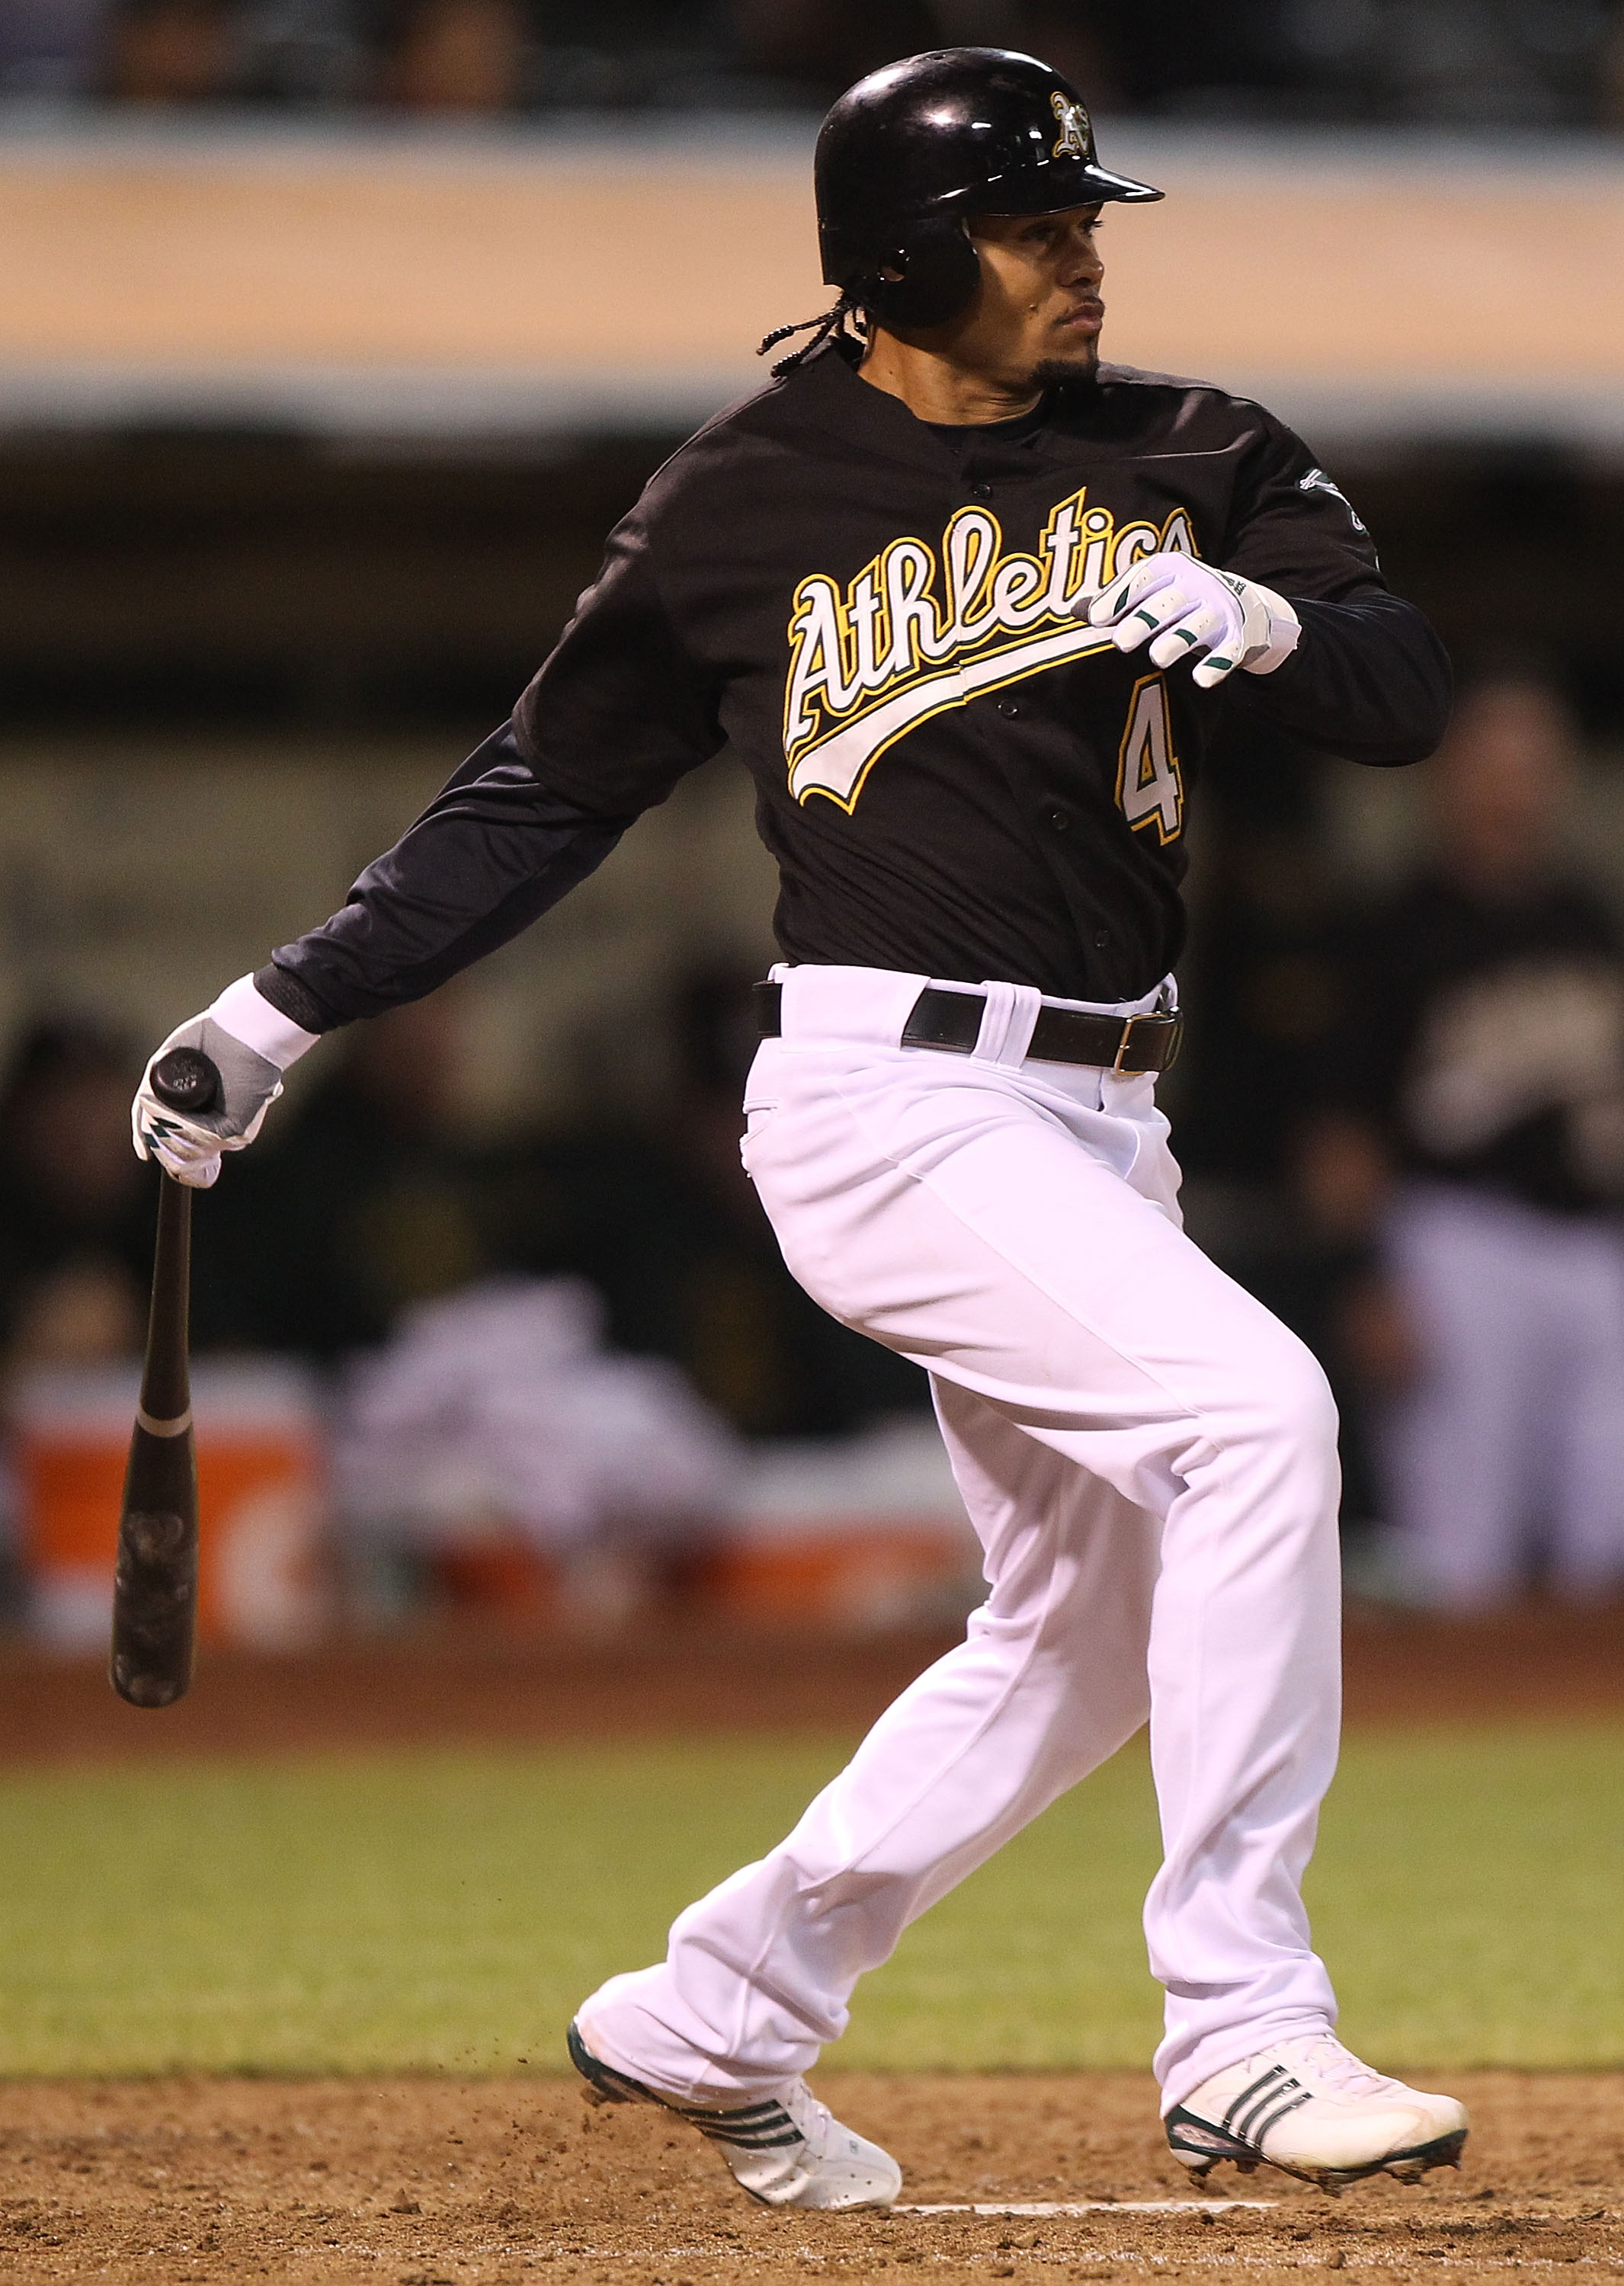 OAKLAND, CA - SEPTEMBER 08:  Coco Crisp #4 of the Oakland Athletics hits an RBI single in the sixth inning against the Seattle Mariners during a Major League Baseball game at the Oakland-Alameda County Coliseum on September 8, 2010 in Oakland, California.